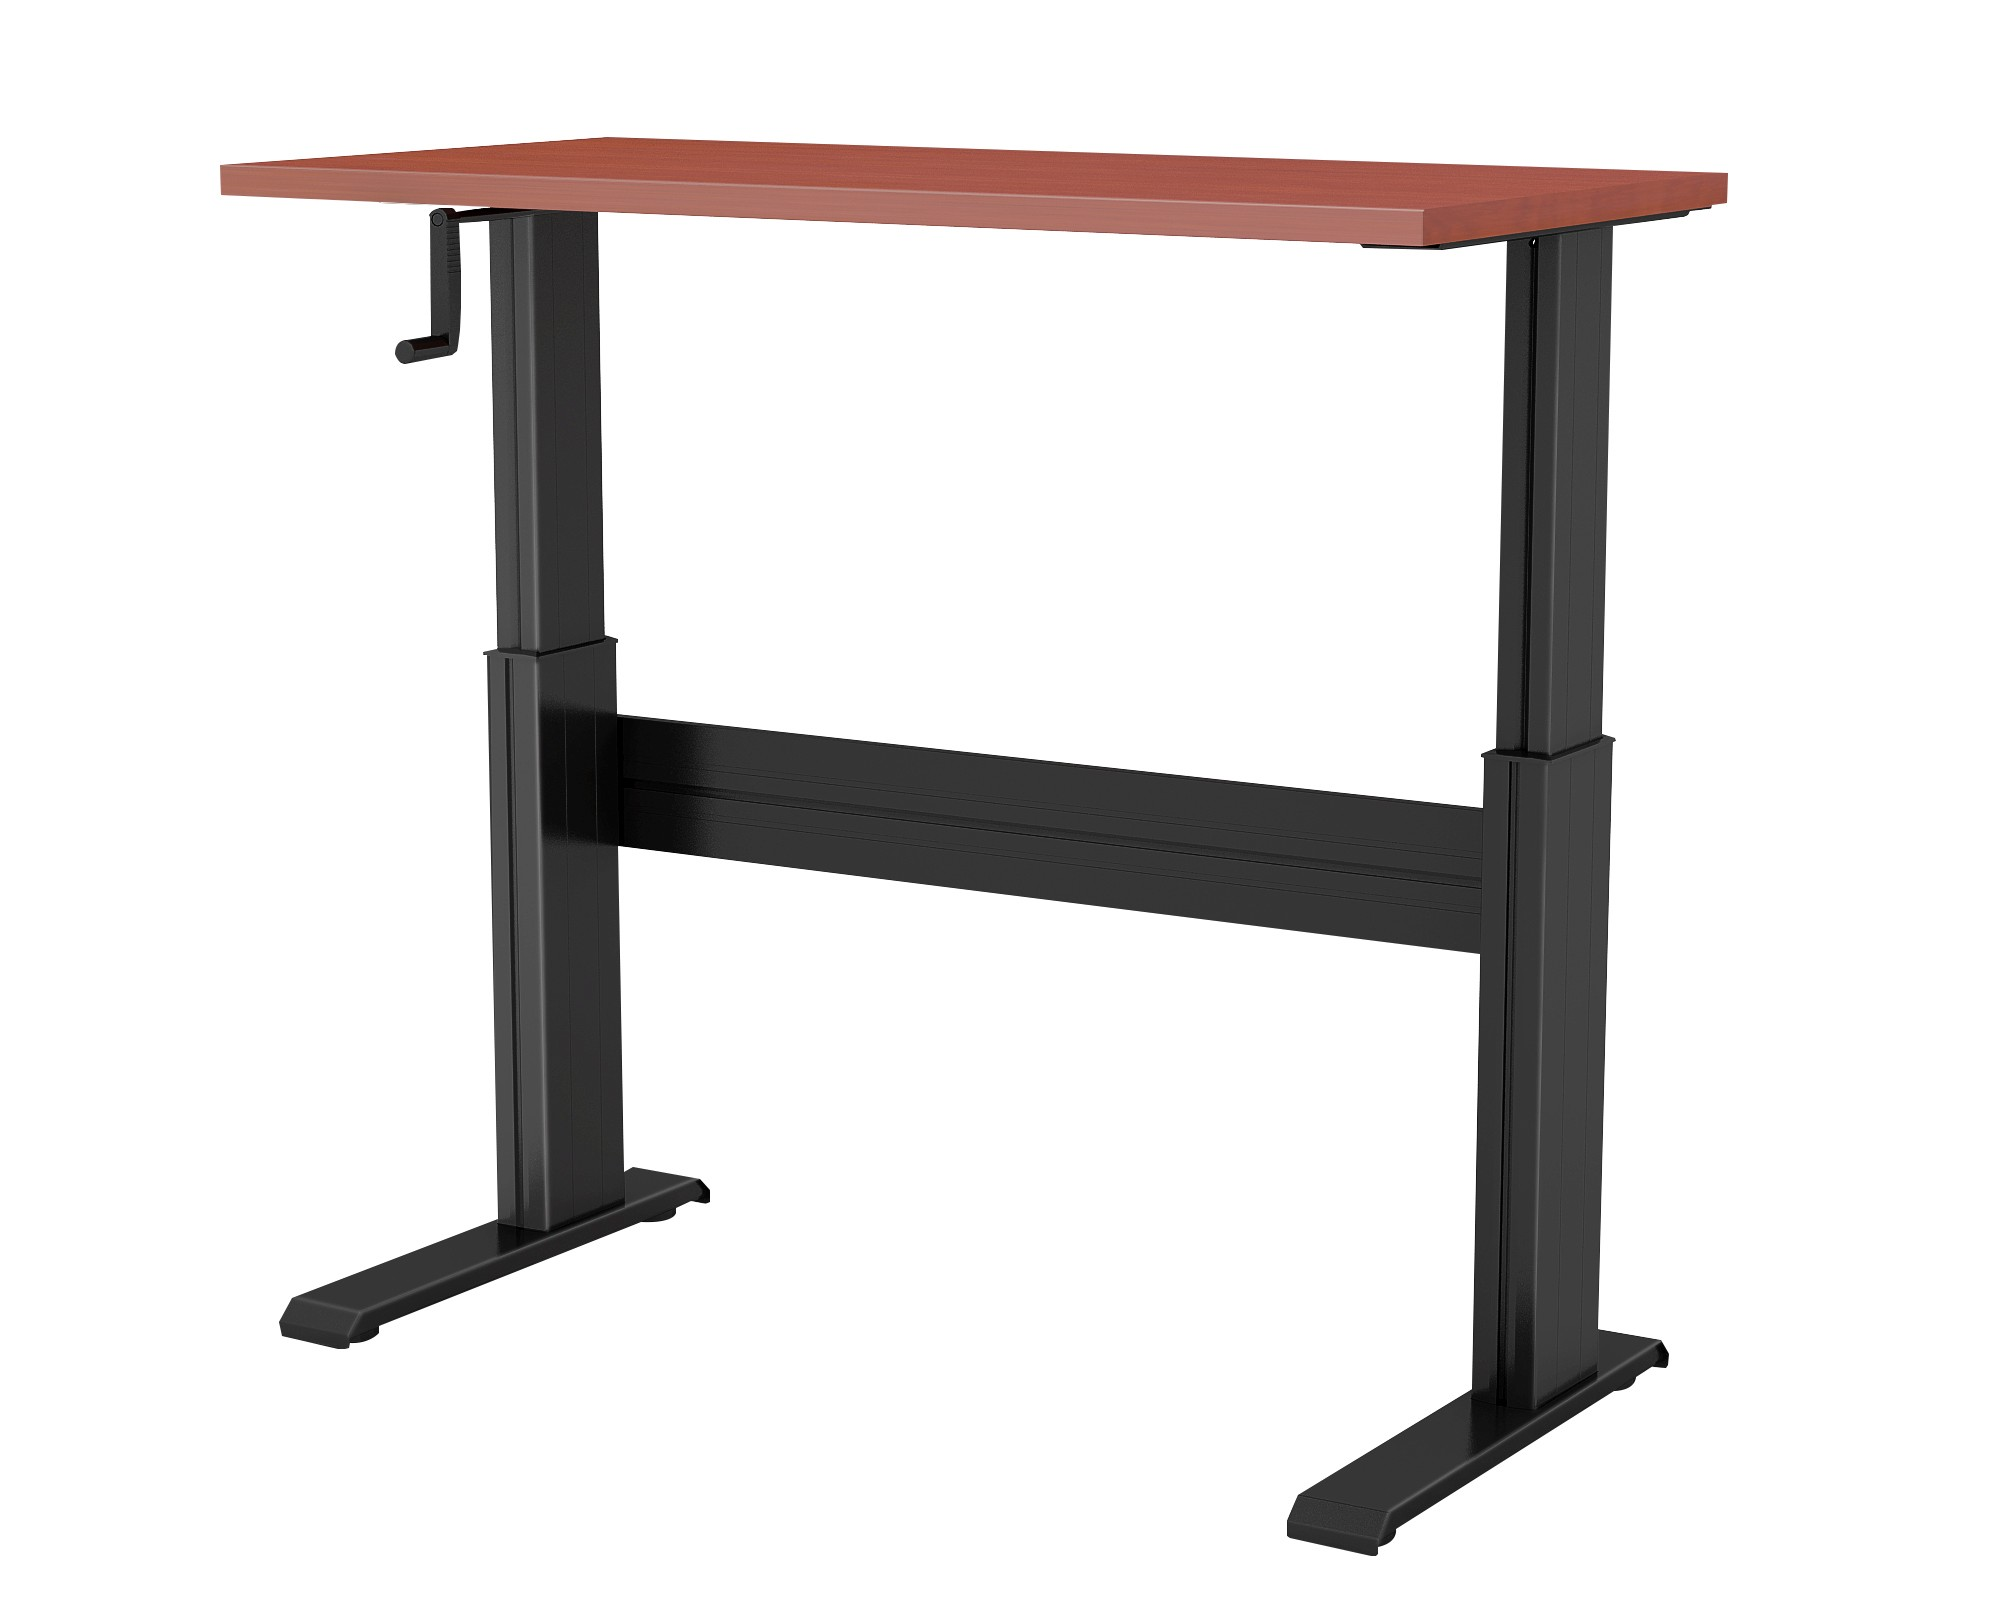 easier best workstation adjustable designinyou to convertible down frame desks by work stand buying up and make raises height desk standing your laptop that converter at electric